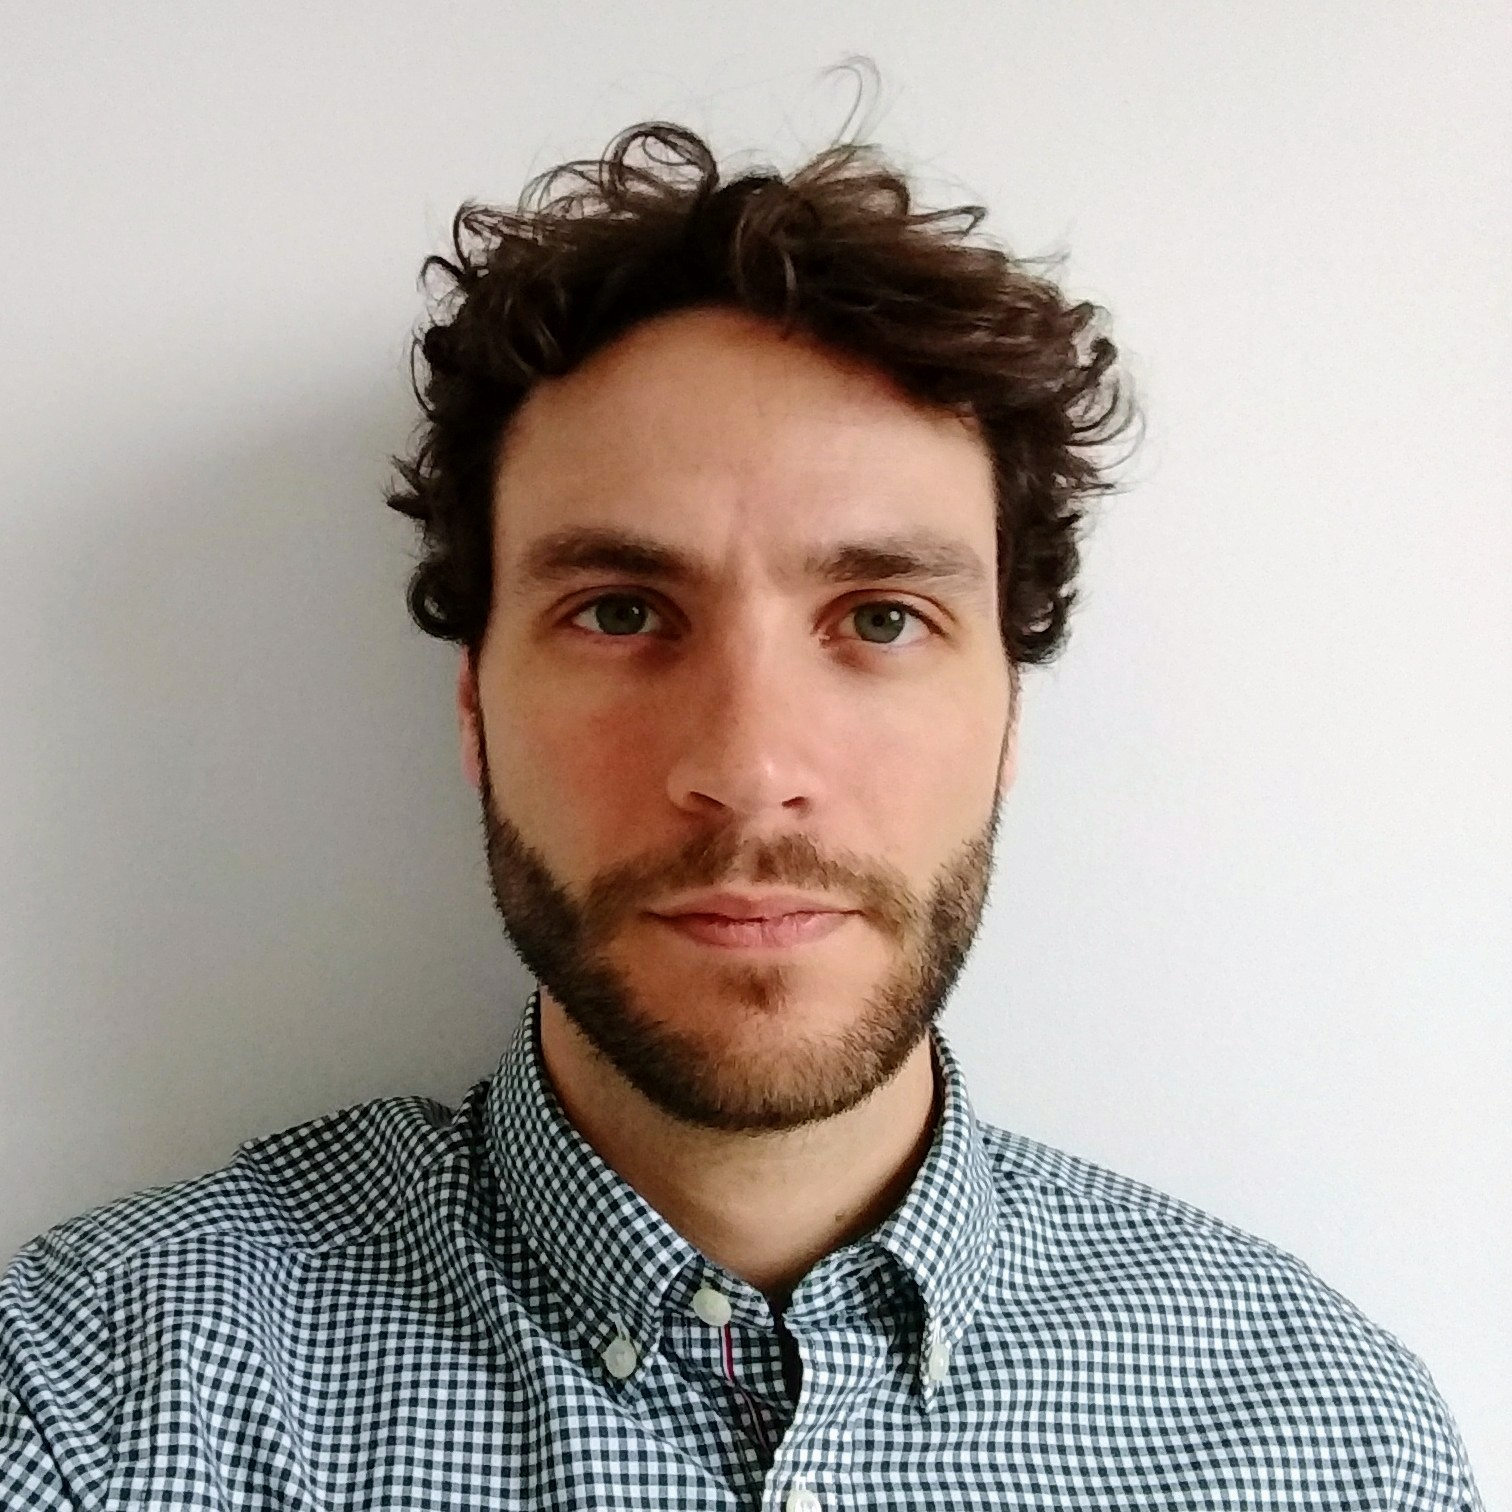 Luca Donatini, PhD Student, Maritime Technology Division at Ghent University